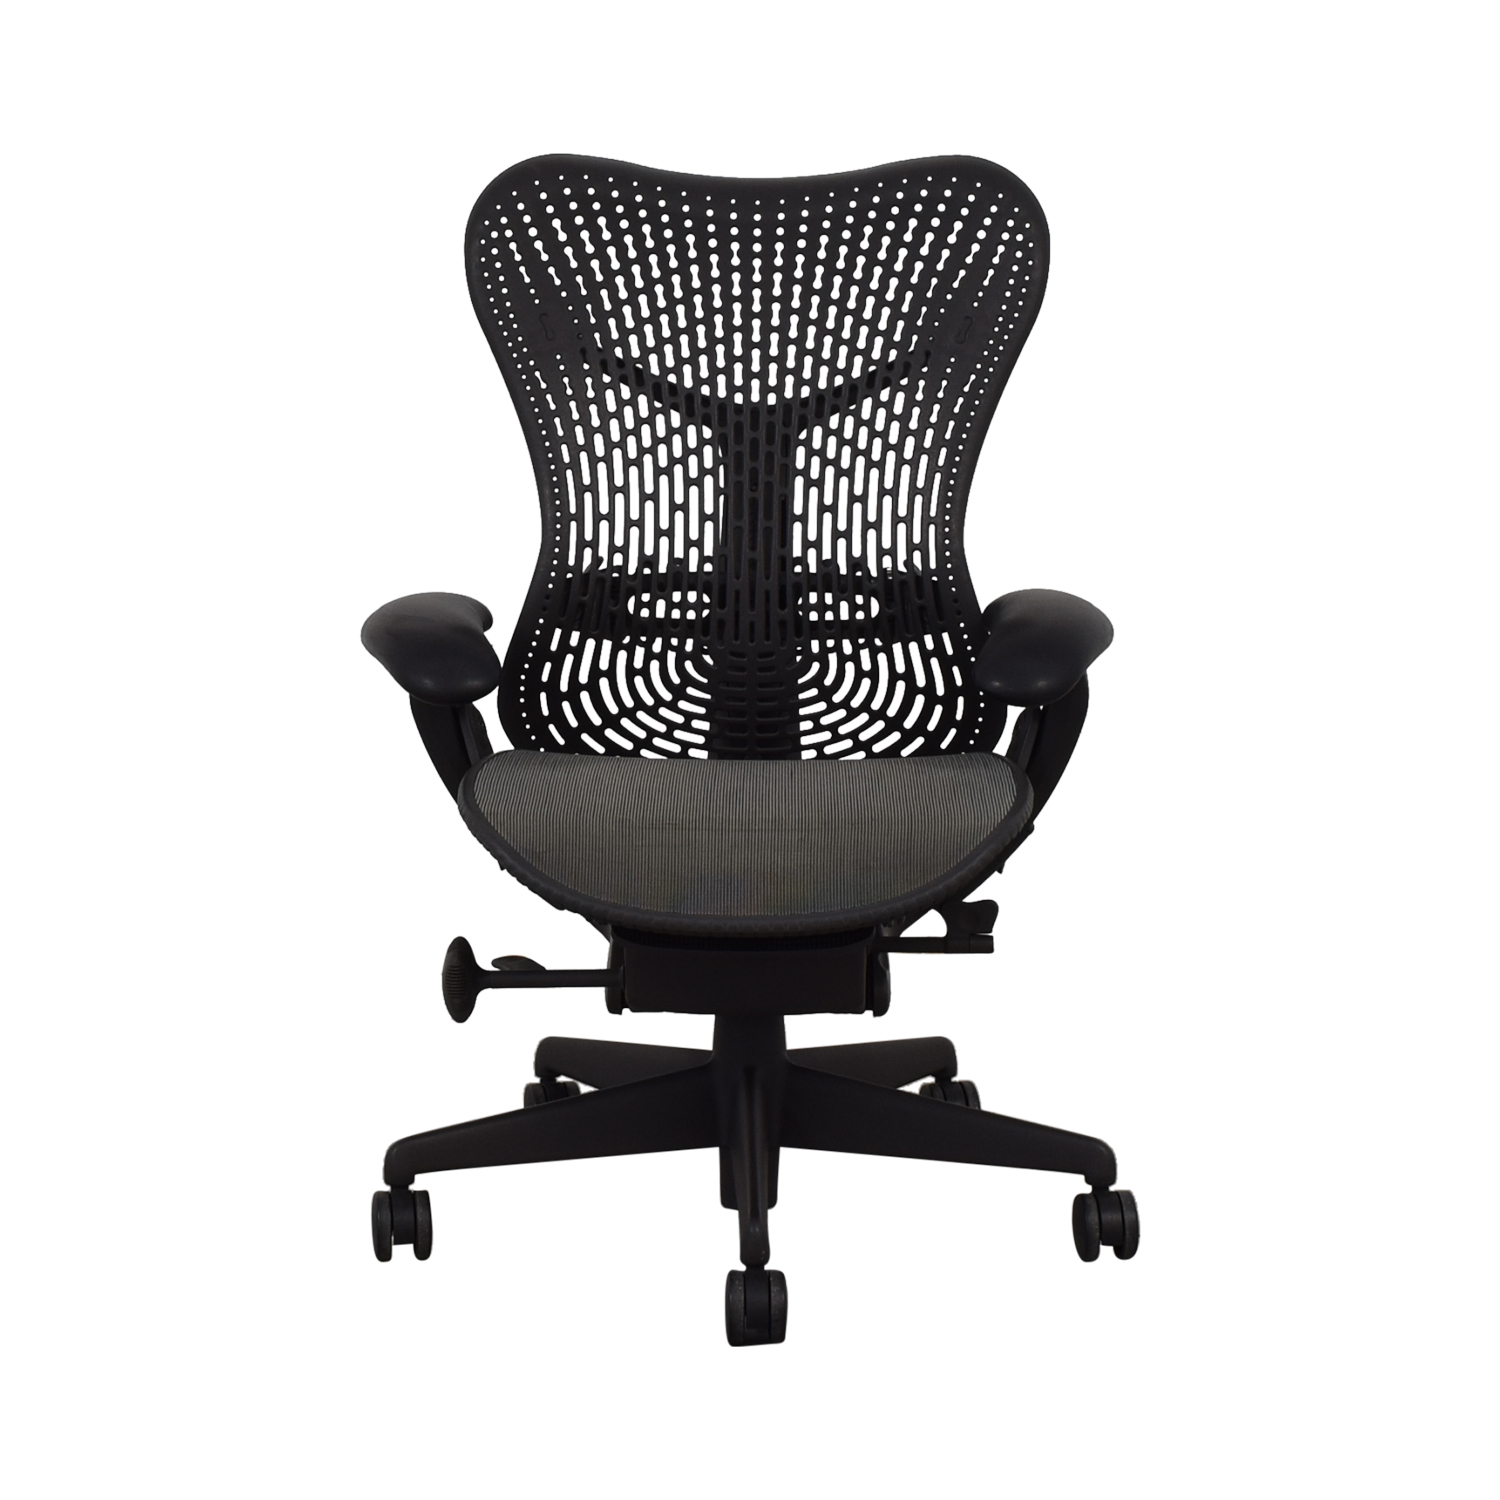 Herman Miller Herman Miller Ergonomic Office Chair Chairs